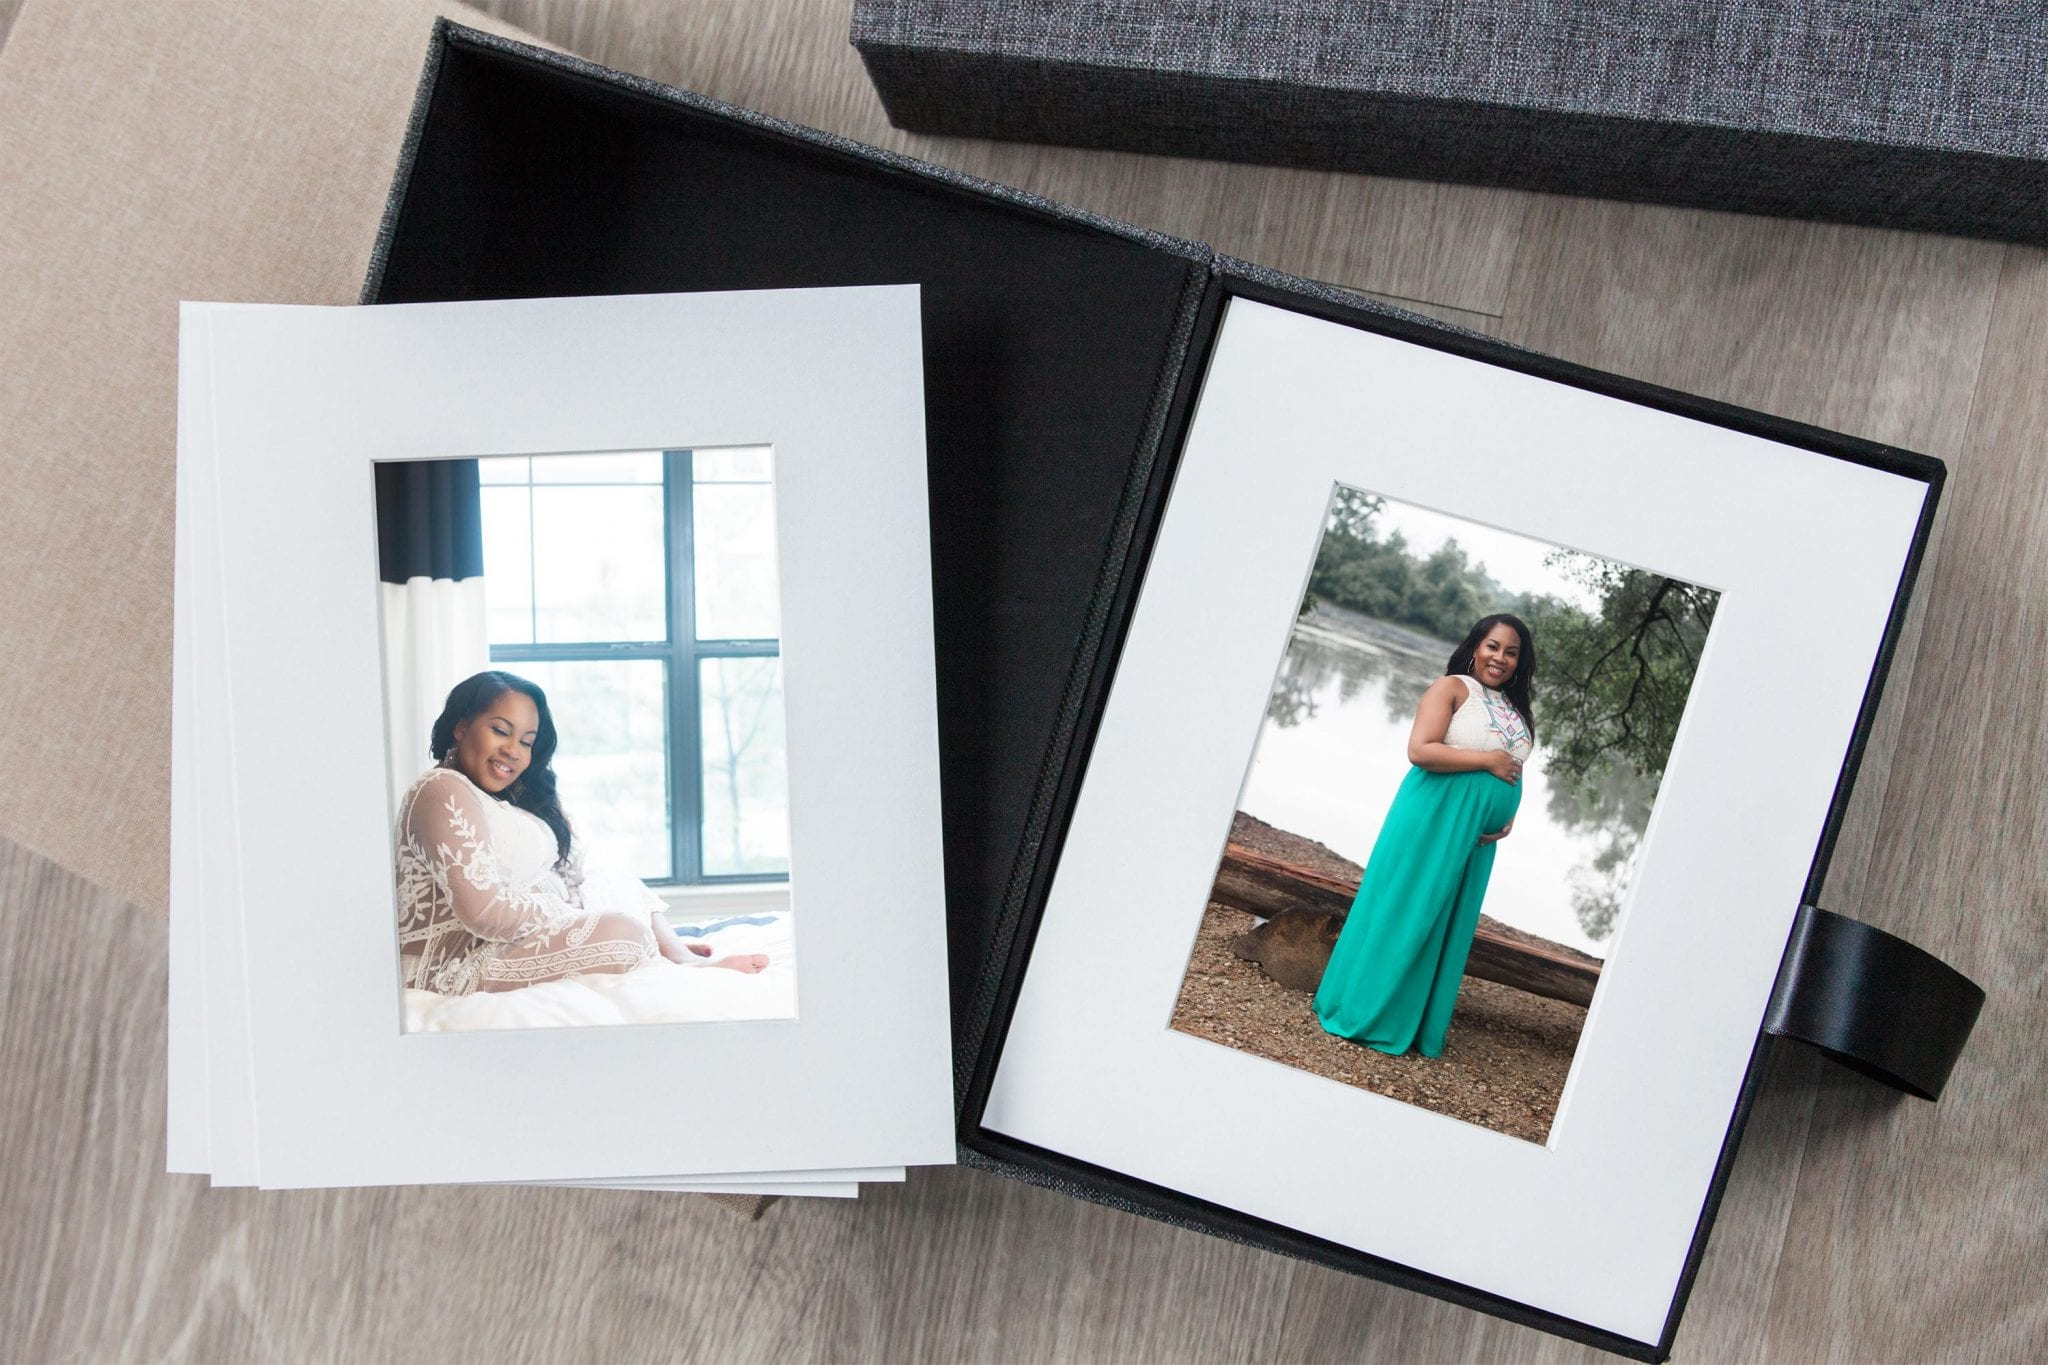 Printed Art, Keepsakes, & Heirlooms like Folio Boxes by Chic Jae Houston Portrait & Lifestyle Photographer Heirloom Folio Box with Matted Photos for Keepsake